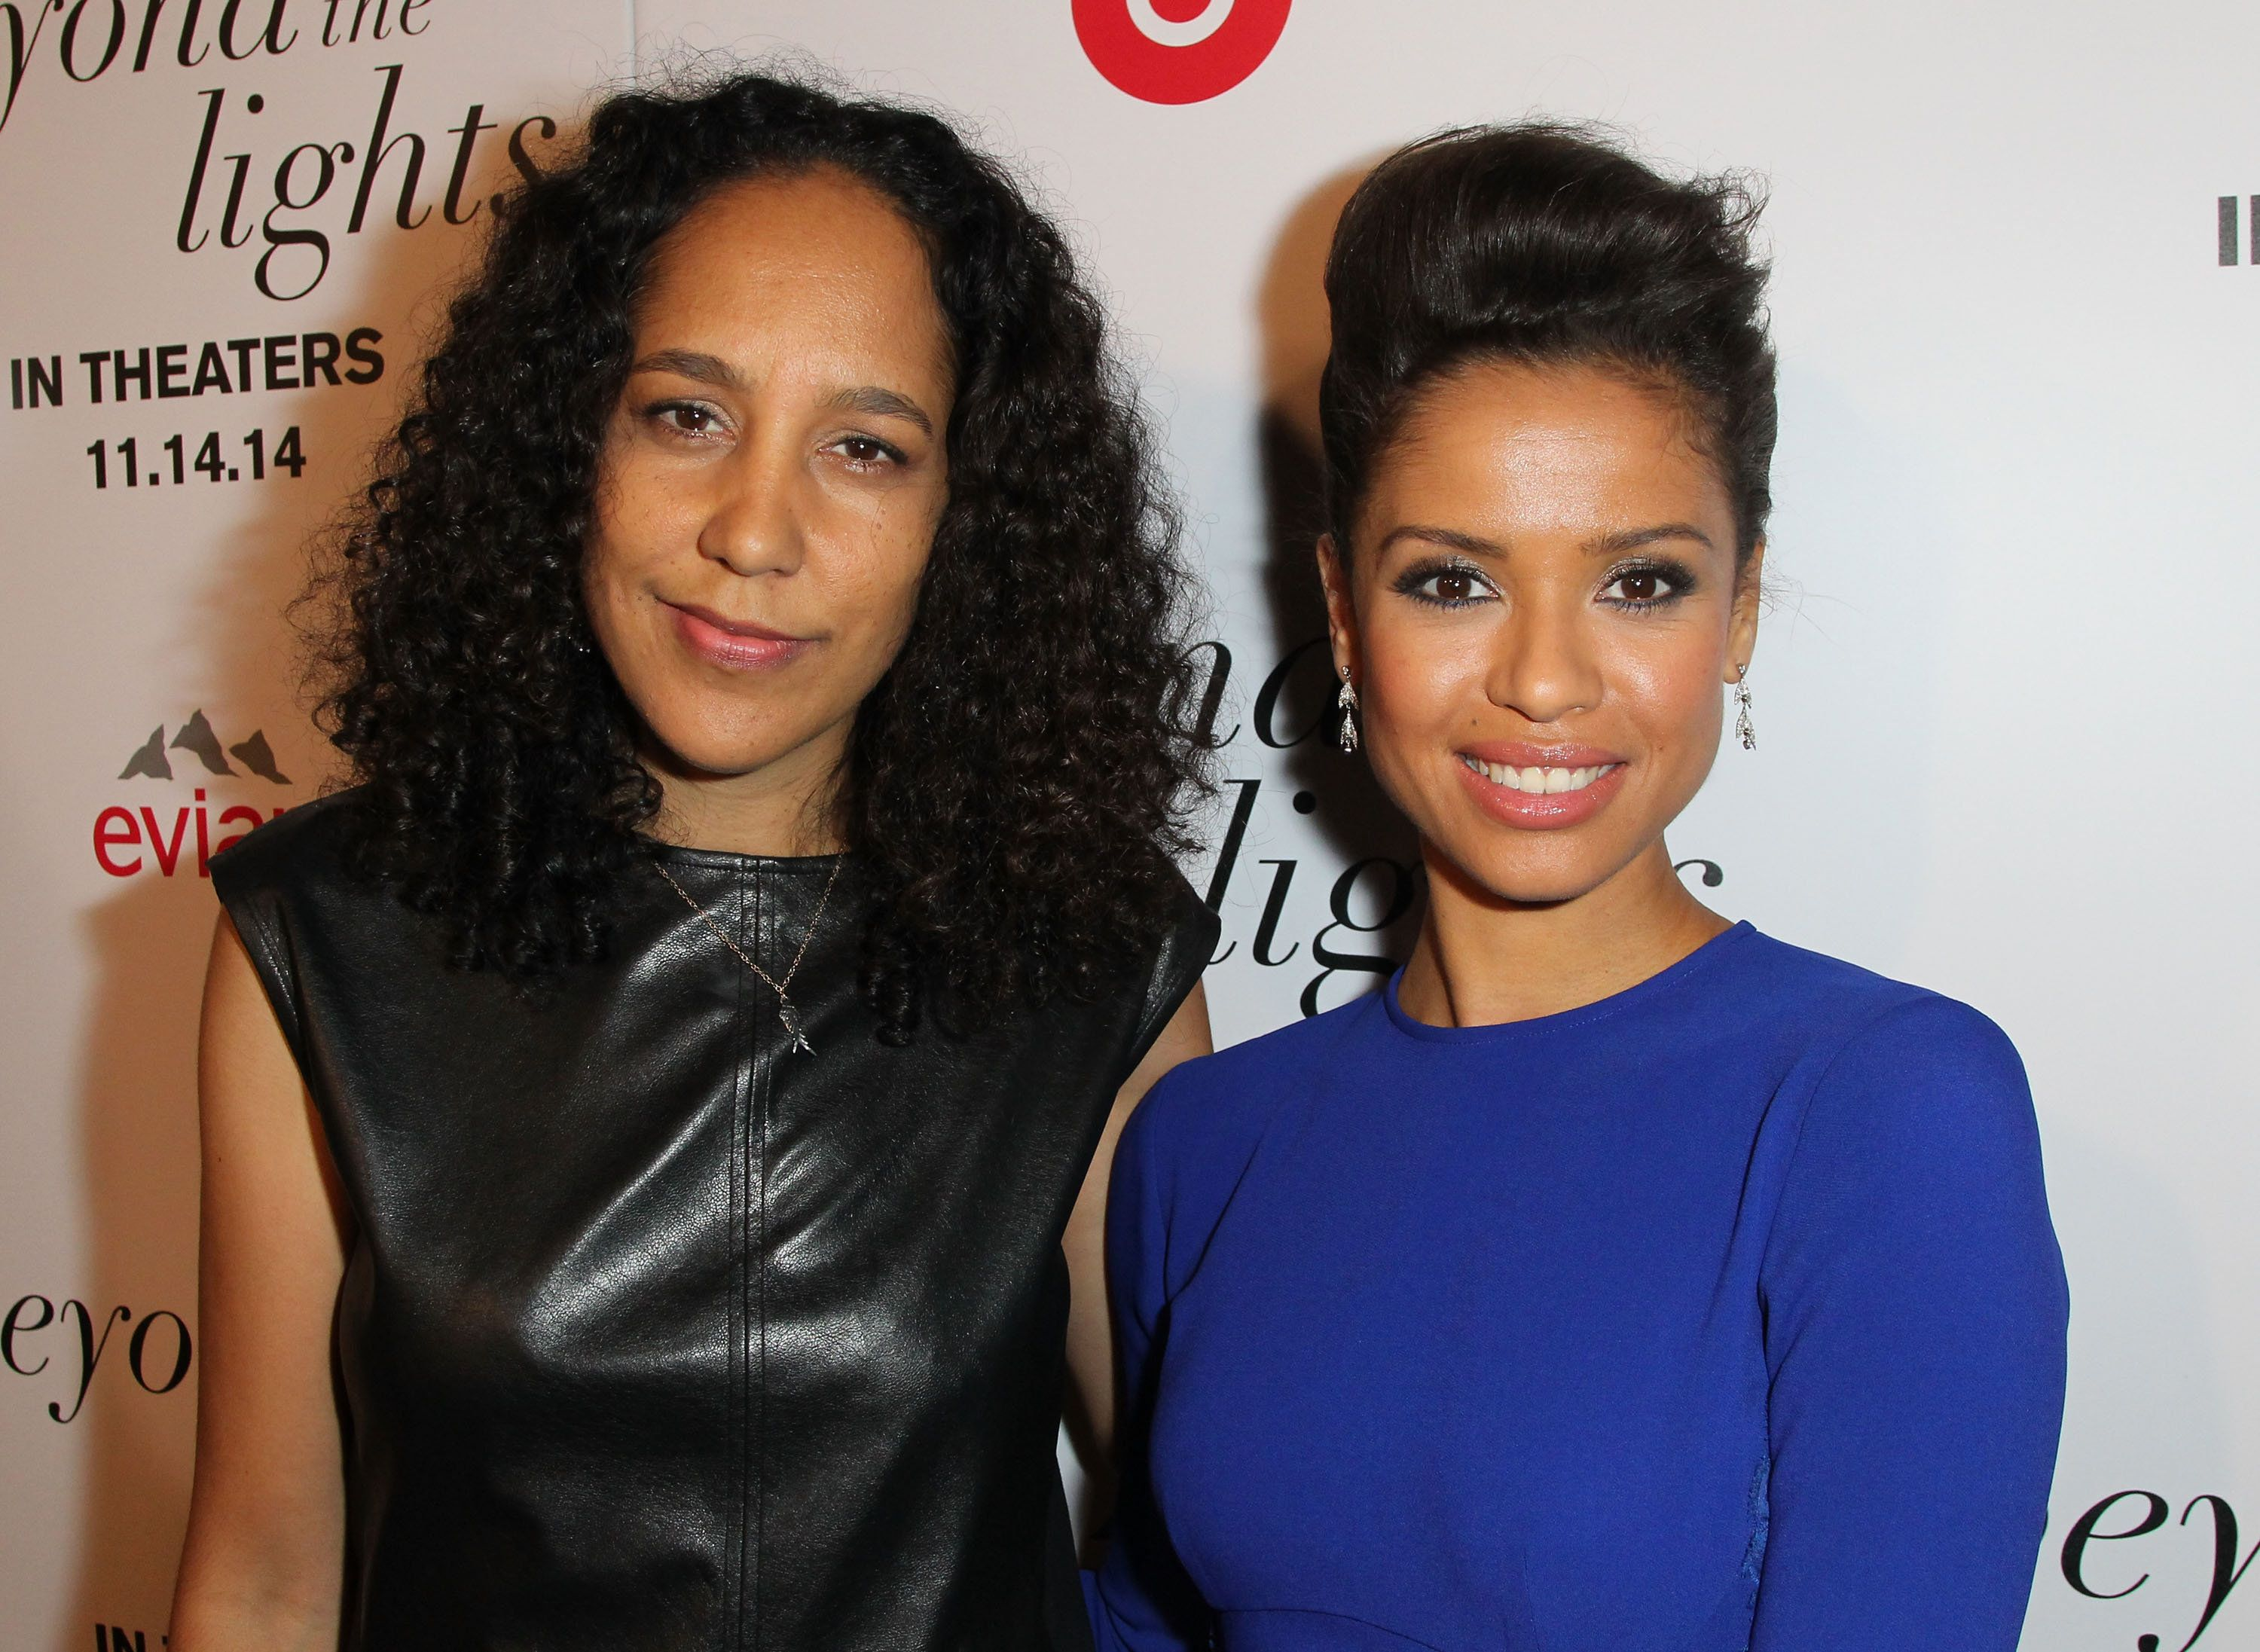 HOLLYWOOD, CA - NOVEMBER 12:  Director Gina Prince-Bythewood (L) and actress Gugu Mbatha-Raw attend the Premiere of Relativity Studios and BET Networks' 'Beyond The Lights'  at ArcLight Hollywood on November 12, 2014 in Hollywood, California.  (Photo by David Buchan/Getty Images)